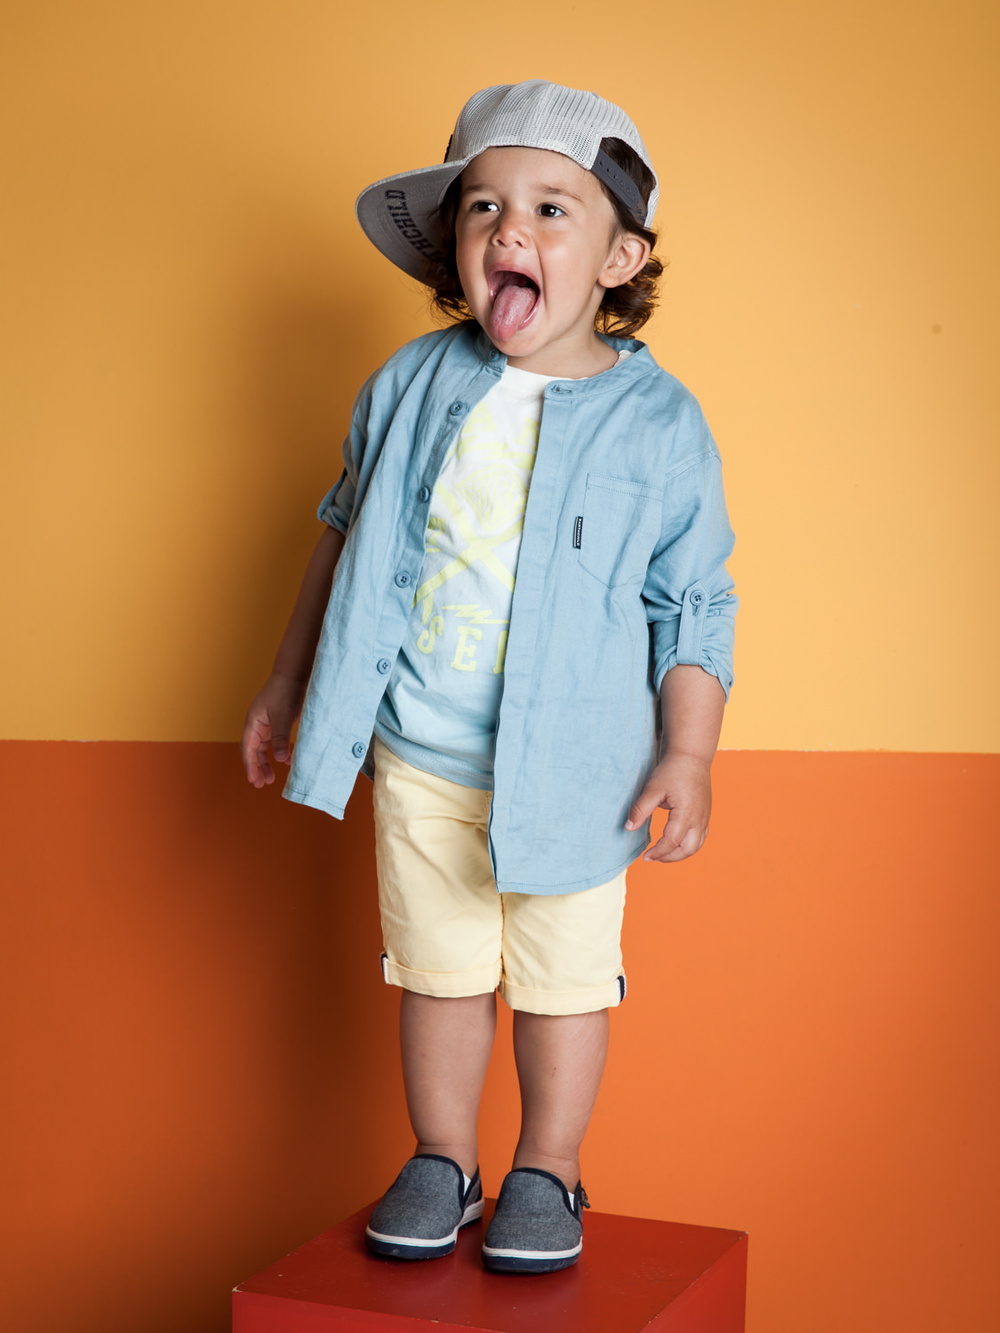 tim gerges capetown photographer kids fashion-3685.jpg